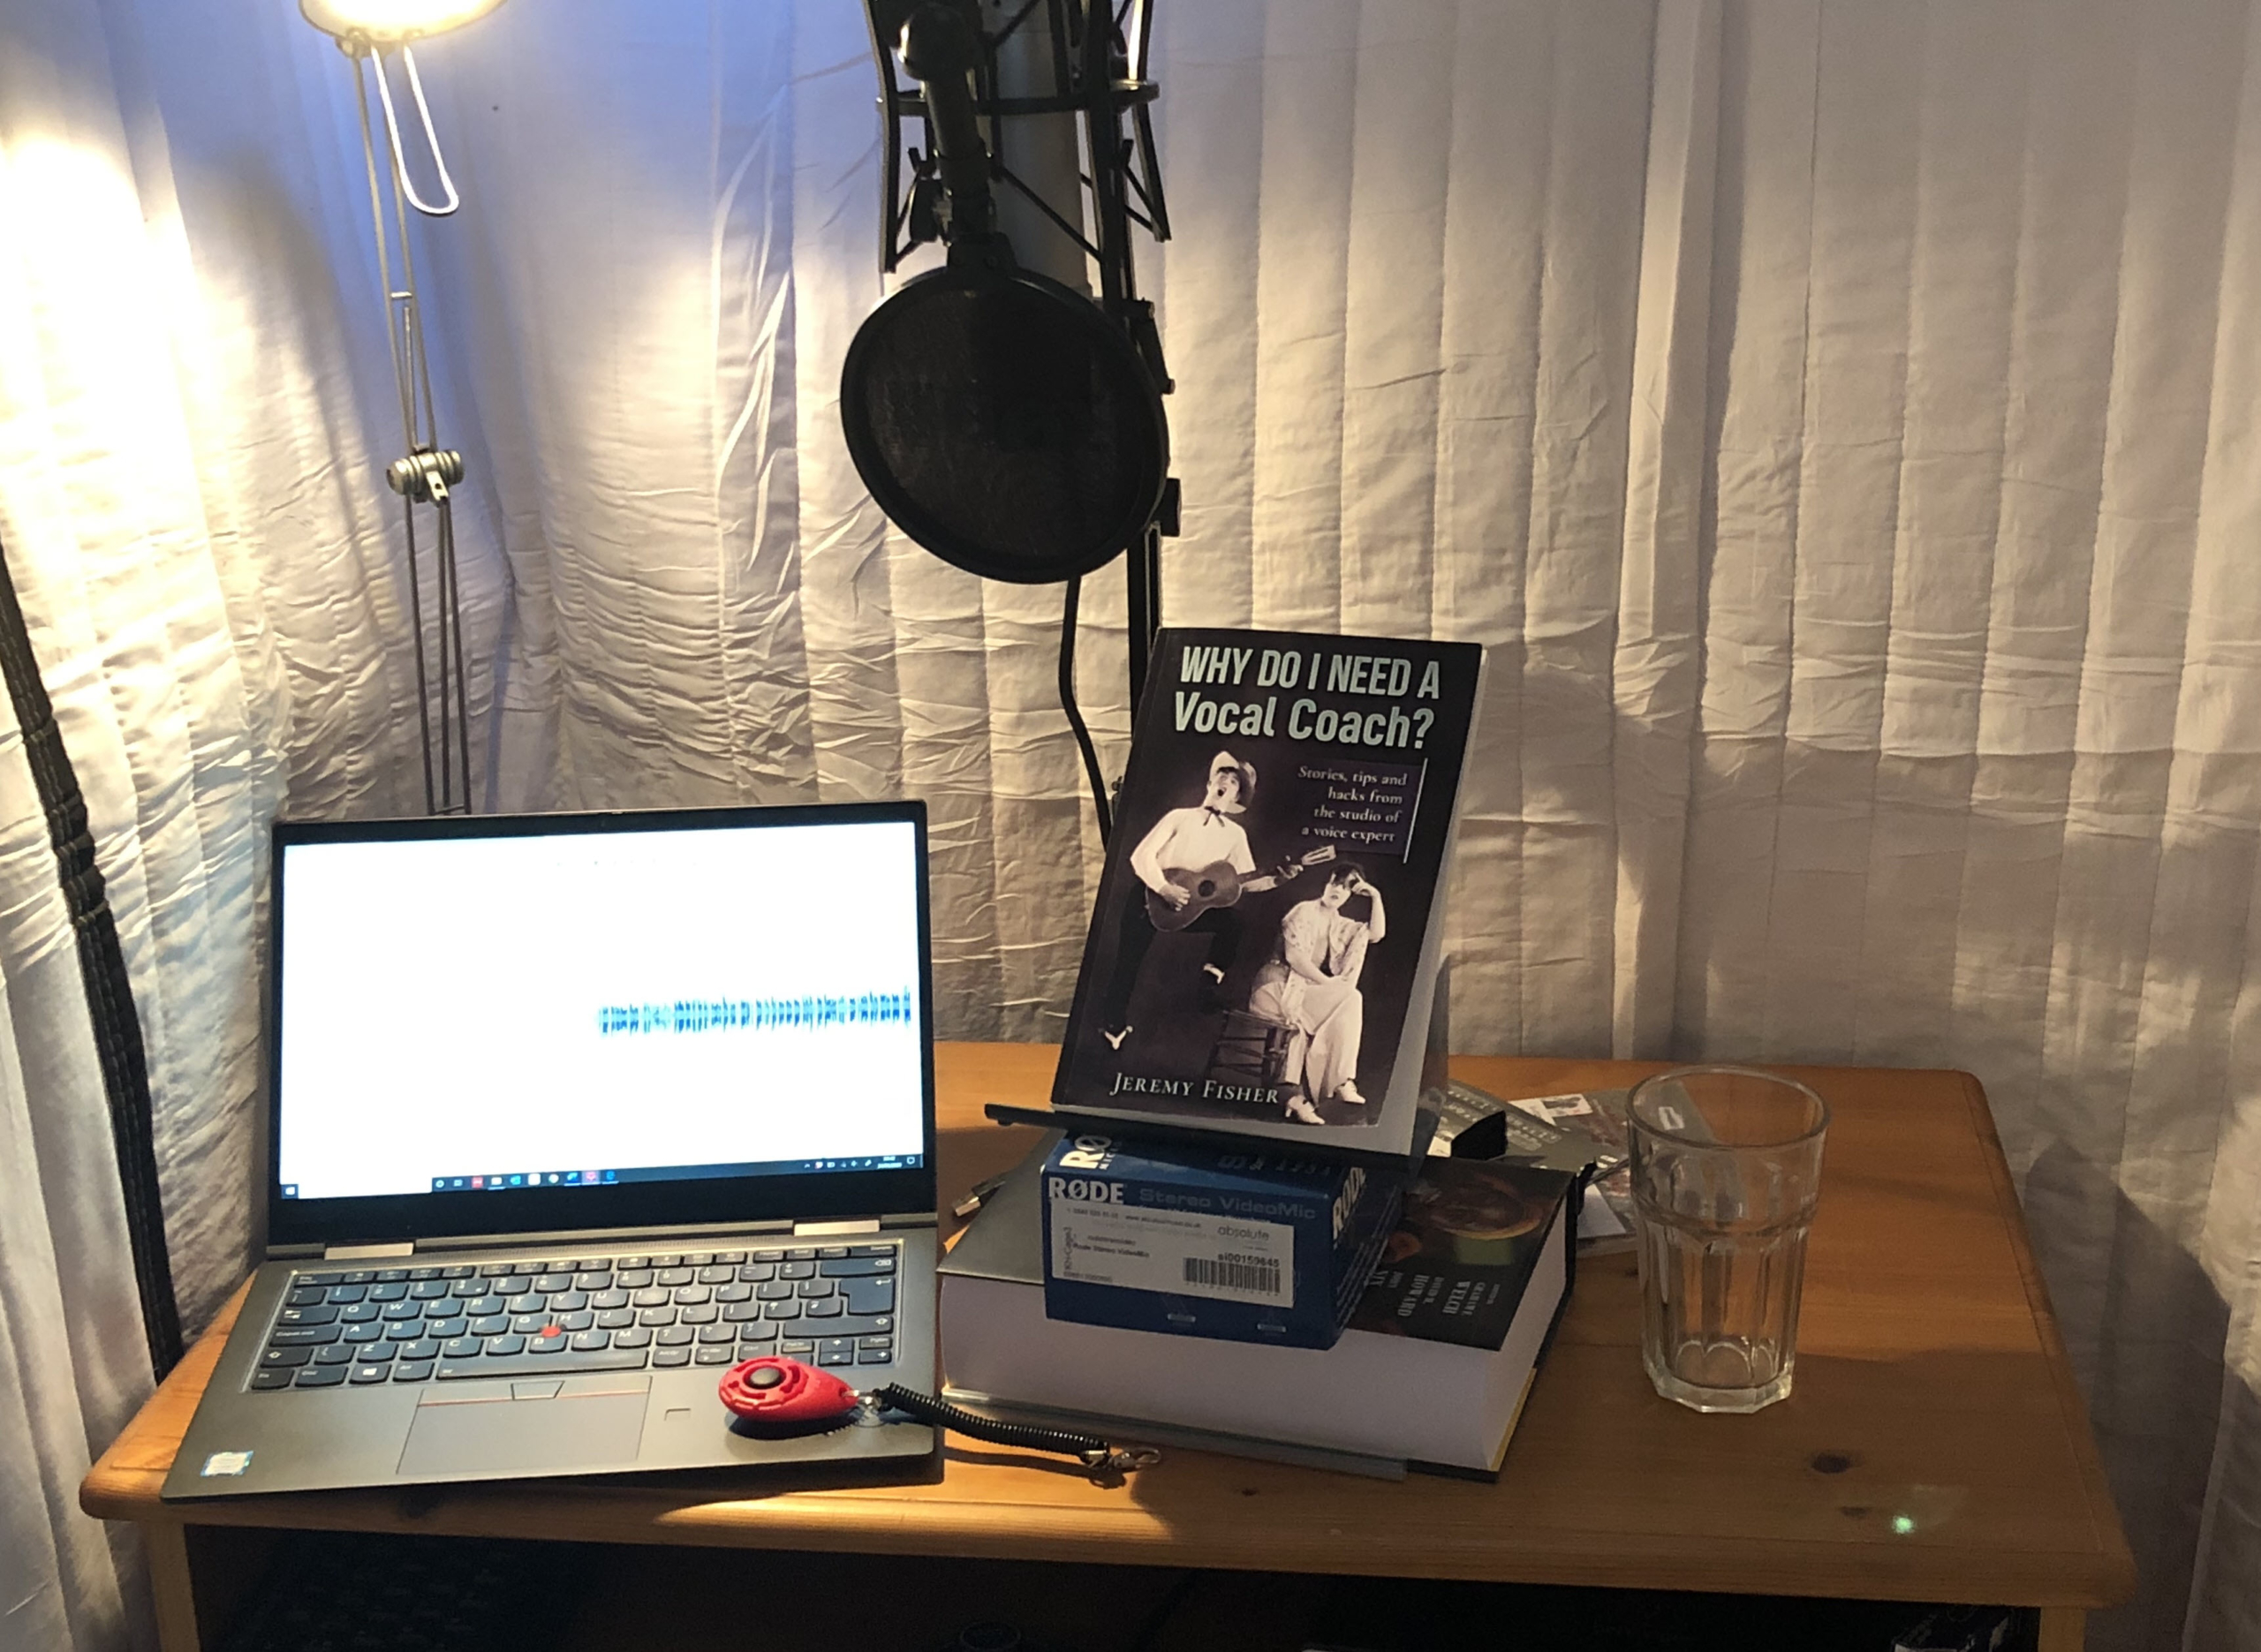 Jeremy Fisher's voiceover booth with laptop, suspended microphone, book and recording equipment